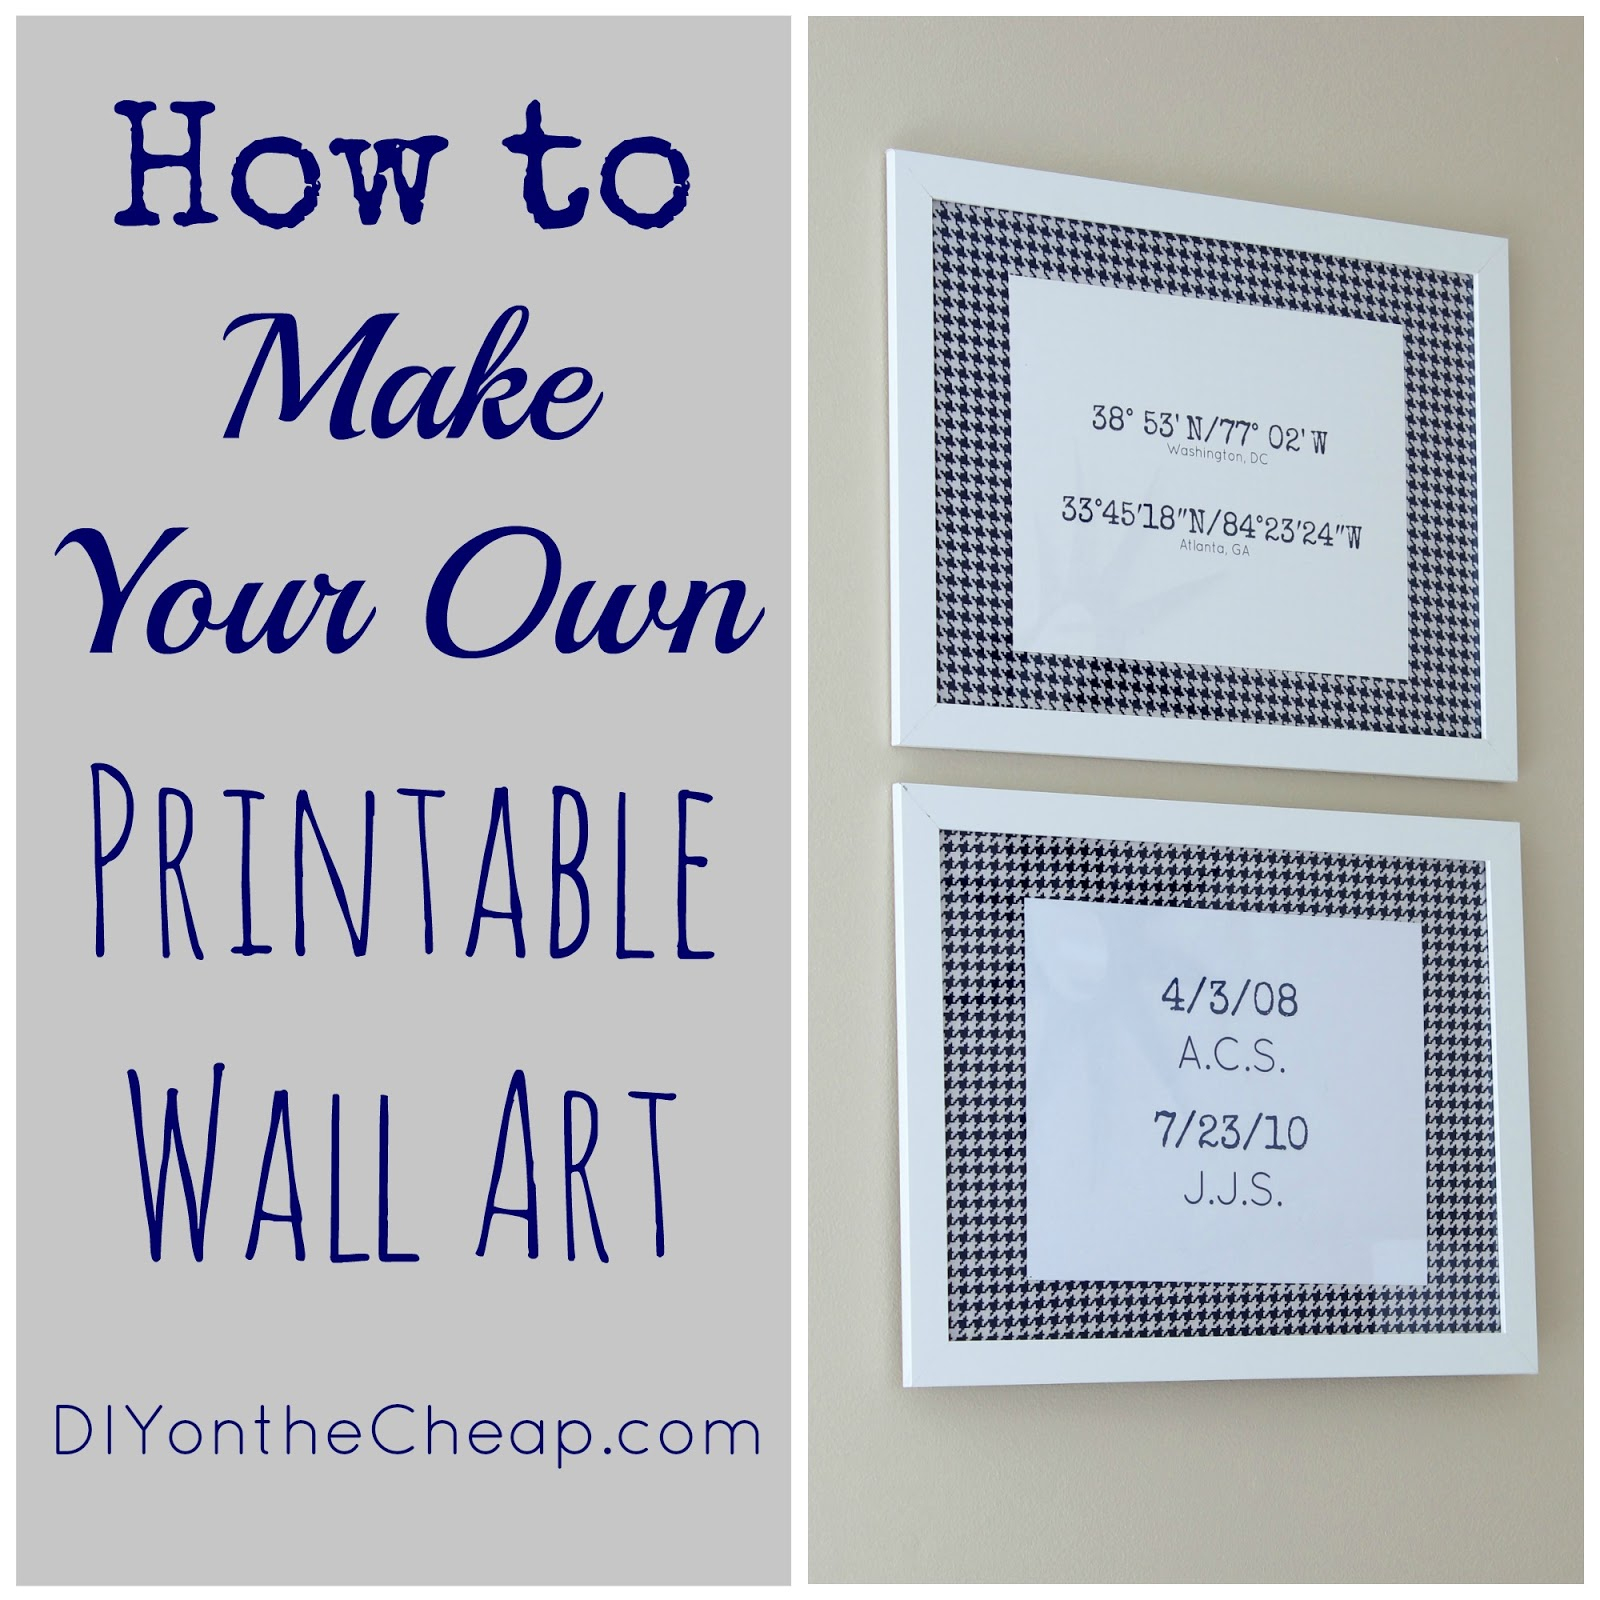 How To Make Your Own Printable Wall Art - Erin Spain - Free Printable Wall Art For Bathroom